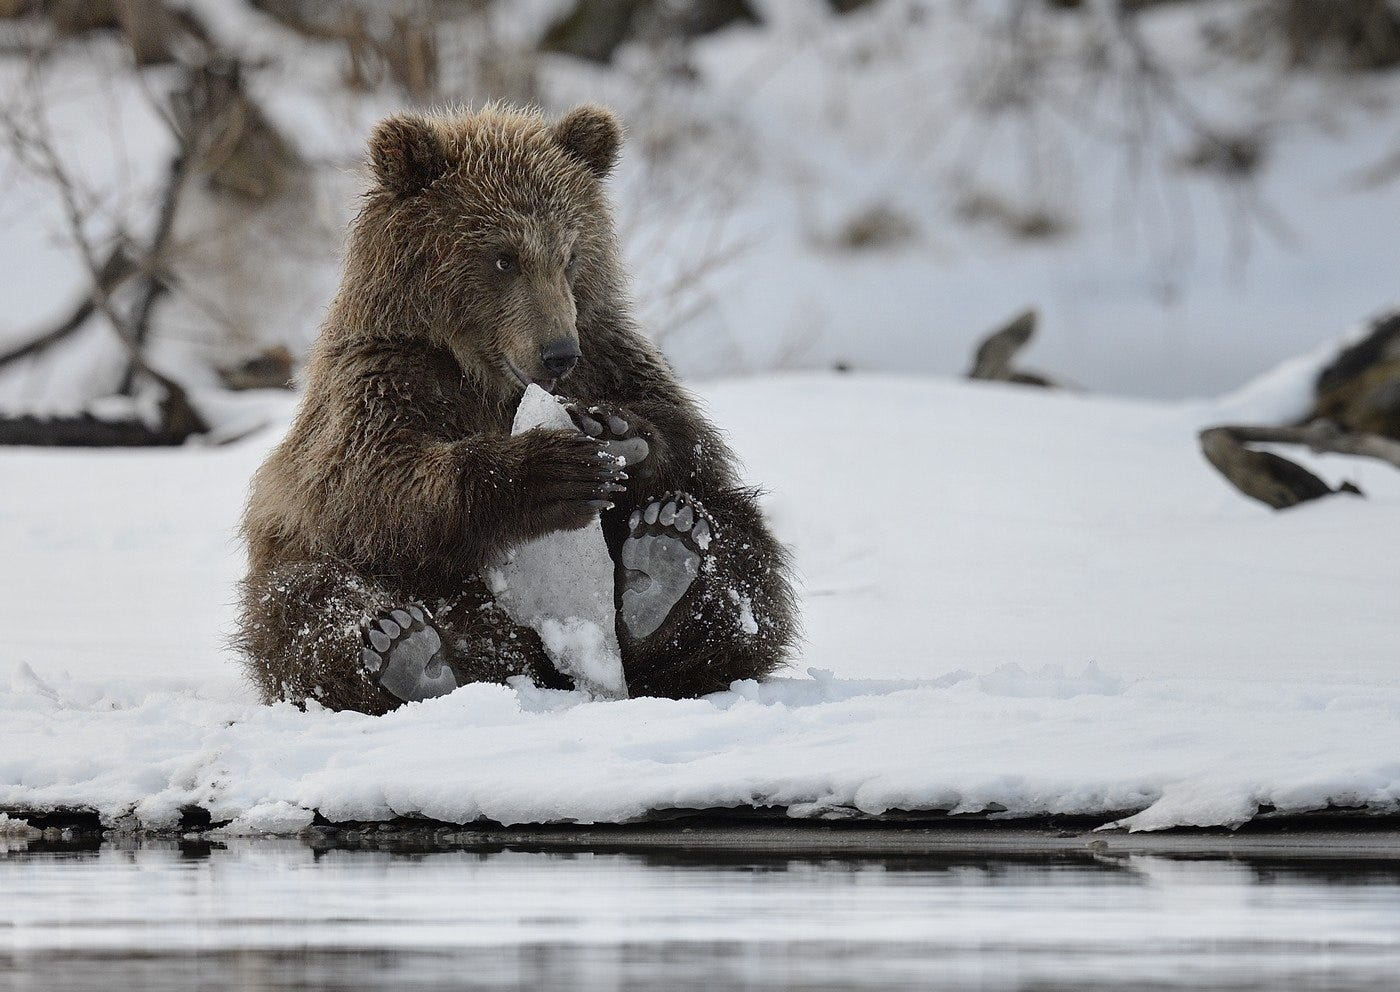 Ungentle charm of Kamchatka bears in photos by Sergey Ivanov - 13